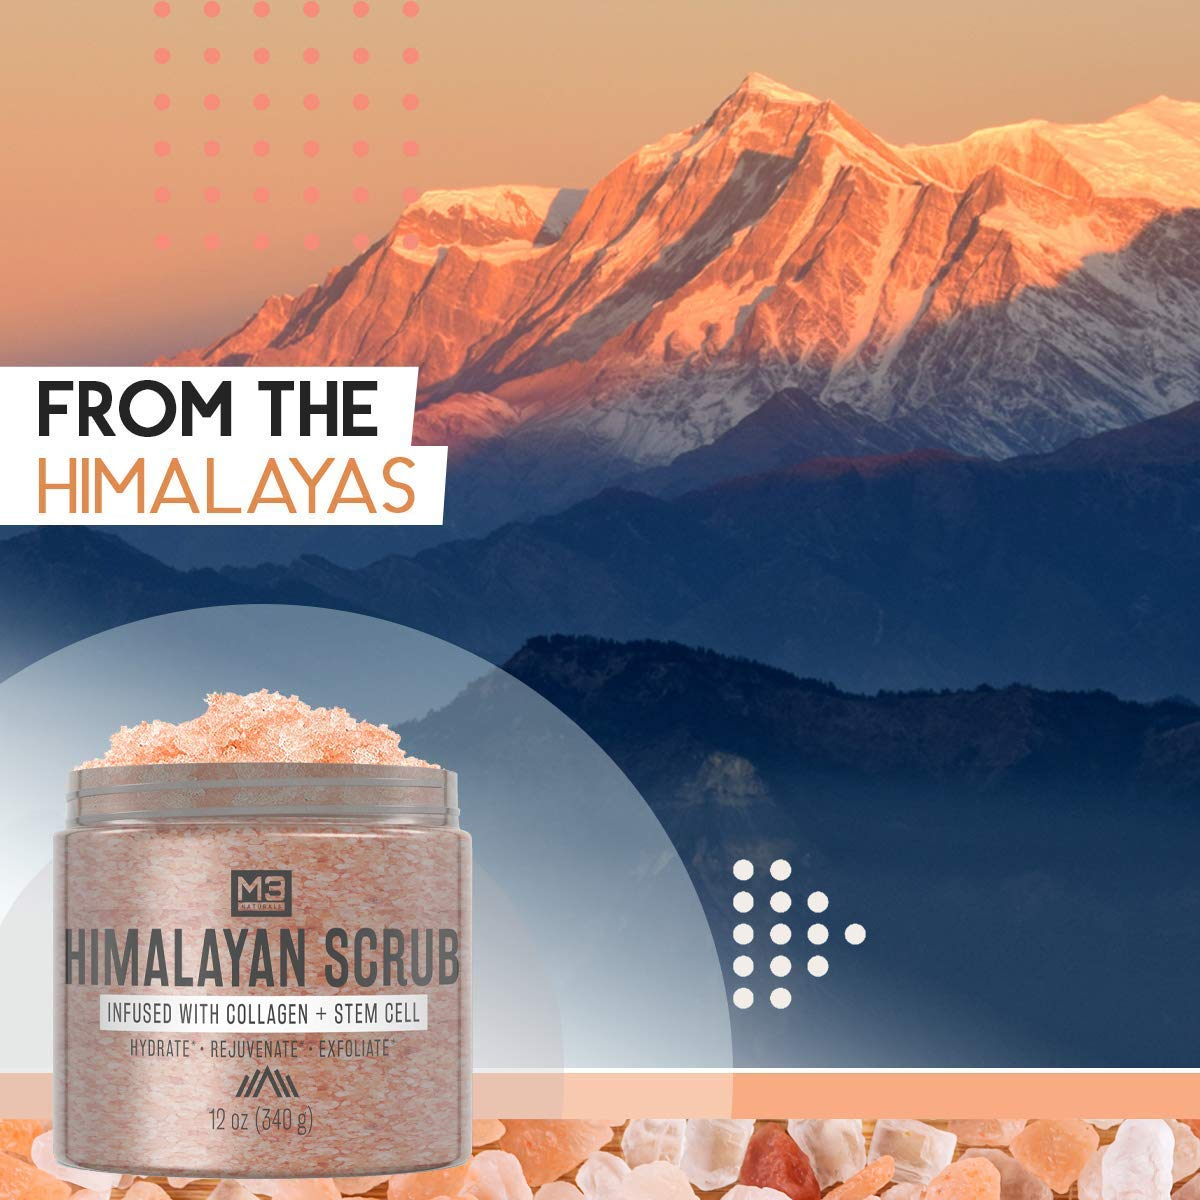 M3 Naturals Himalayan Salt Scrub Infused with Collagen and Stem Cell Natural Exfoliating Body